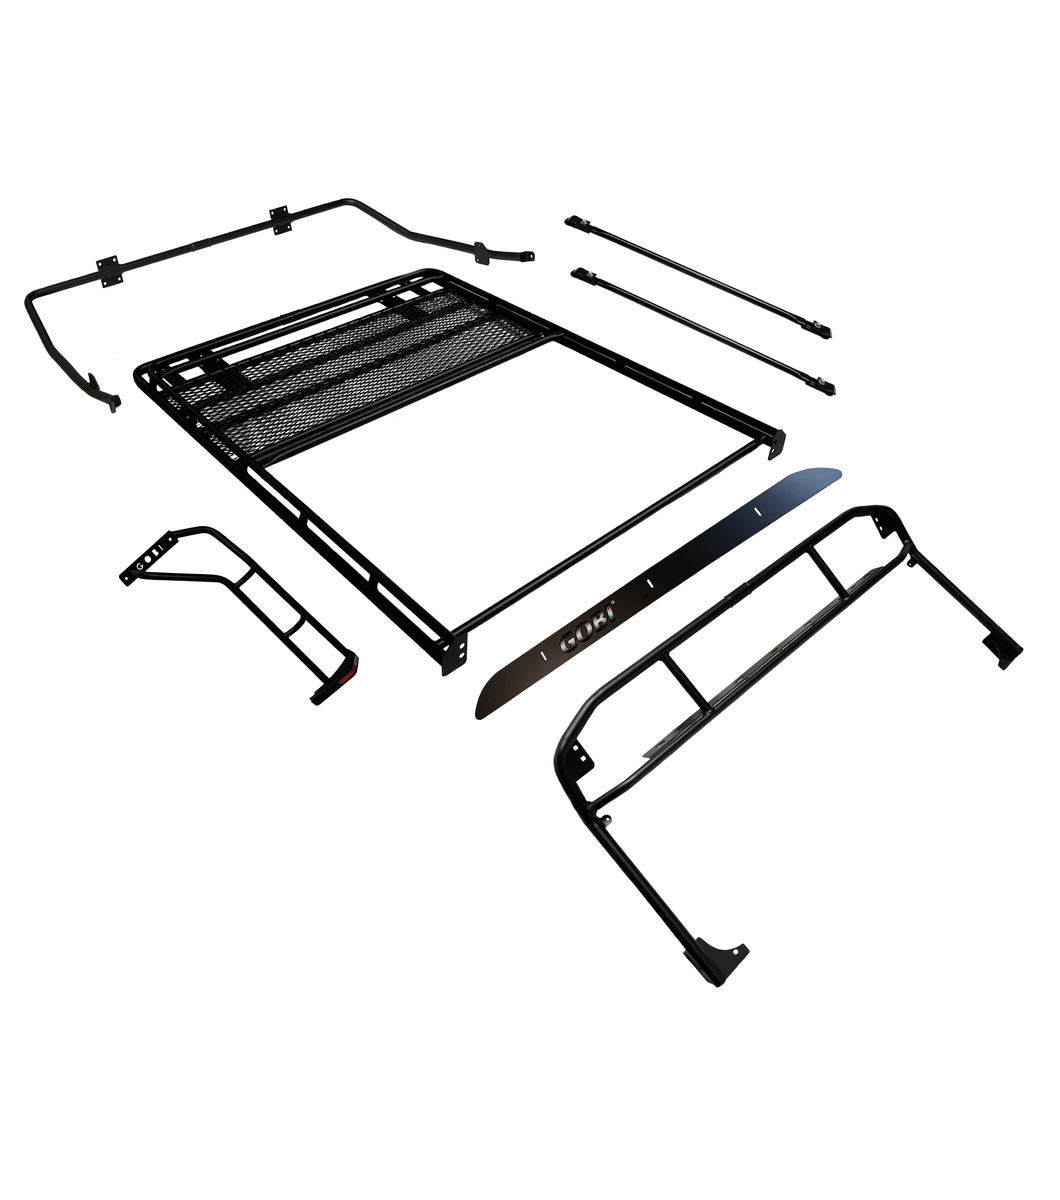 Gobi Jeep Tj Ranger Rack Multi Light Setup With Sunroof